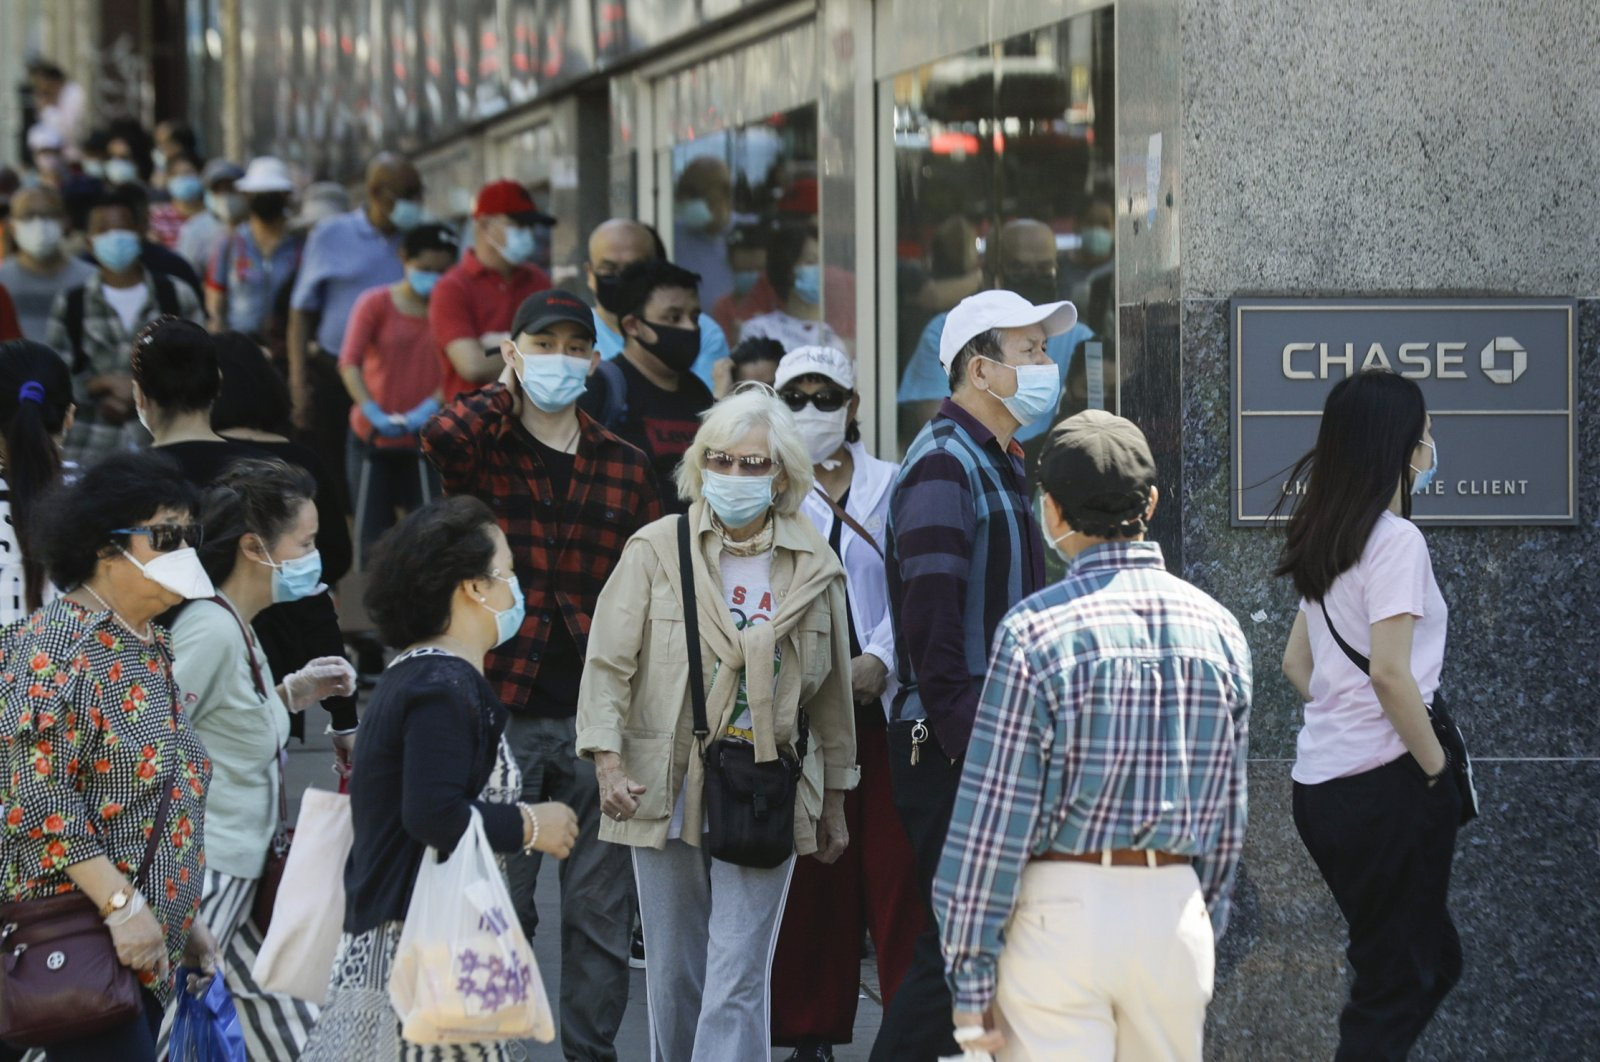 Citizens wearing protective masks wait to enter a Chase bank location in the Flushing section of the Queens borough of New York City, New York, U.S., June 8, 2020. (AP Photo)